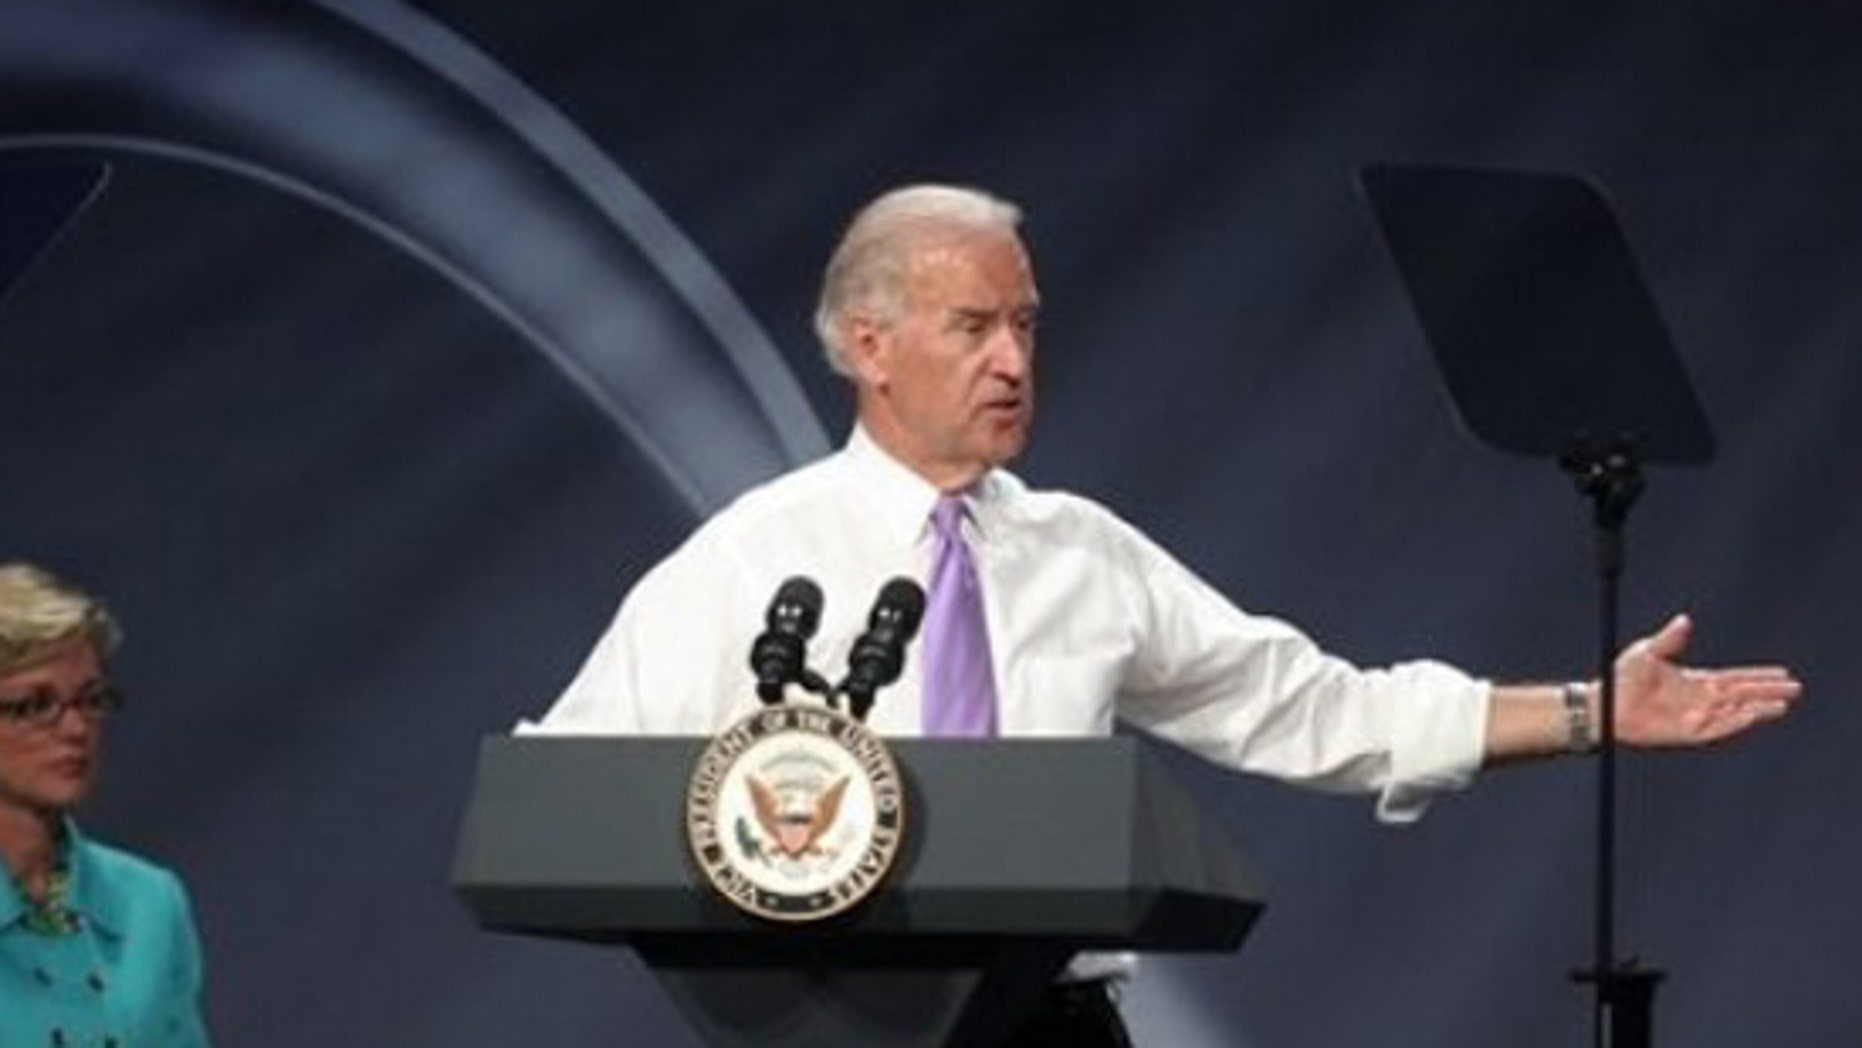 """Vice President Joe Biden addresses Dow Chemical, Dow Kokam employees, members of the public and the media during the Dow Kokam battery plant groundbreaking in Midland, Mich. Monday June 21, 2010. The plant will make lithium-ion battery packs for hybrid and electric vehicles, and will provide 700 to 800 """"green-collar jobs"""" and hundreds more for construction workers. Gov. Jennifer Granholm is seen at left. (AP Photo/ Bay City Times, Michael Randolph)"""